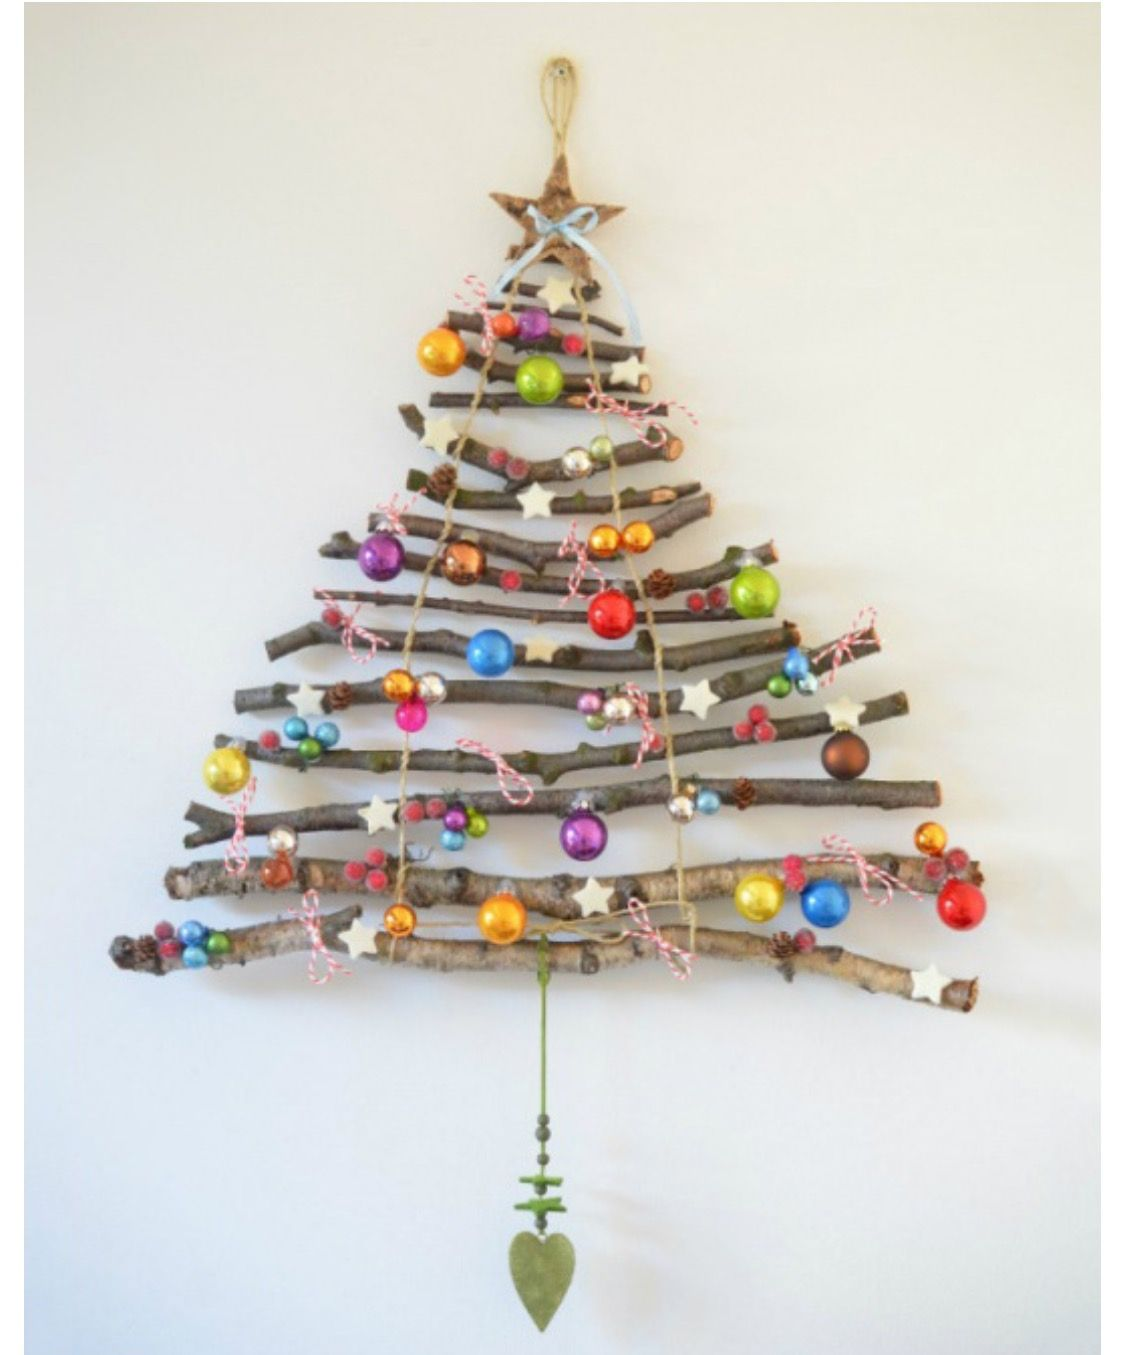 Pin by Irina Chernukha on Christmas decor | Pinterest | Christmas décor